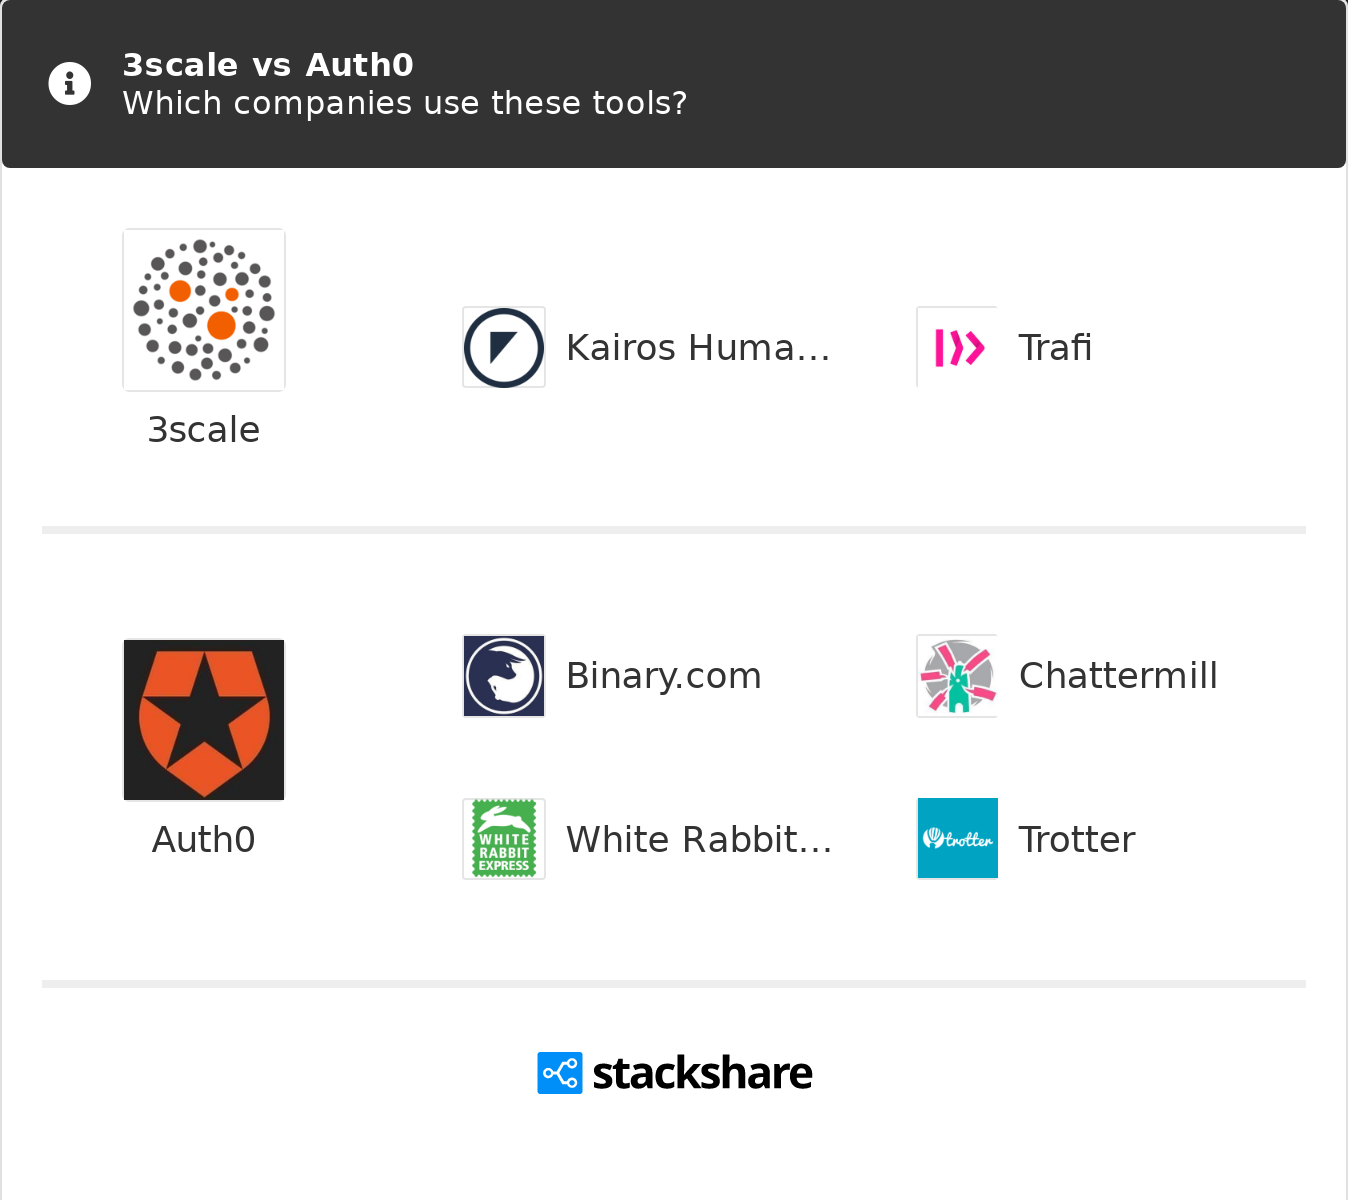 3scale vs Auth0 | What are the differences?